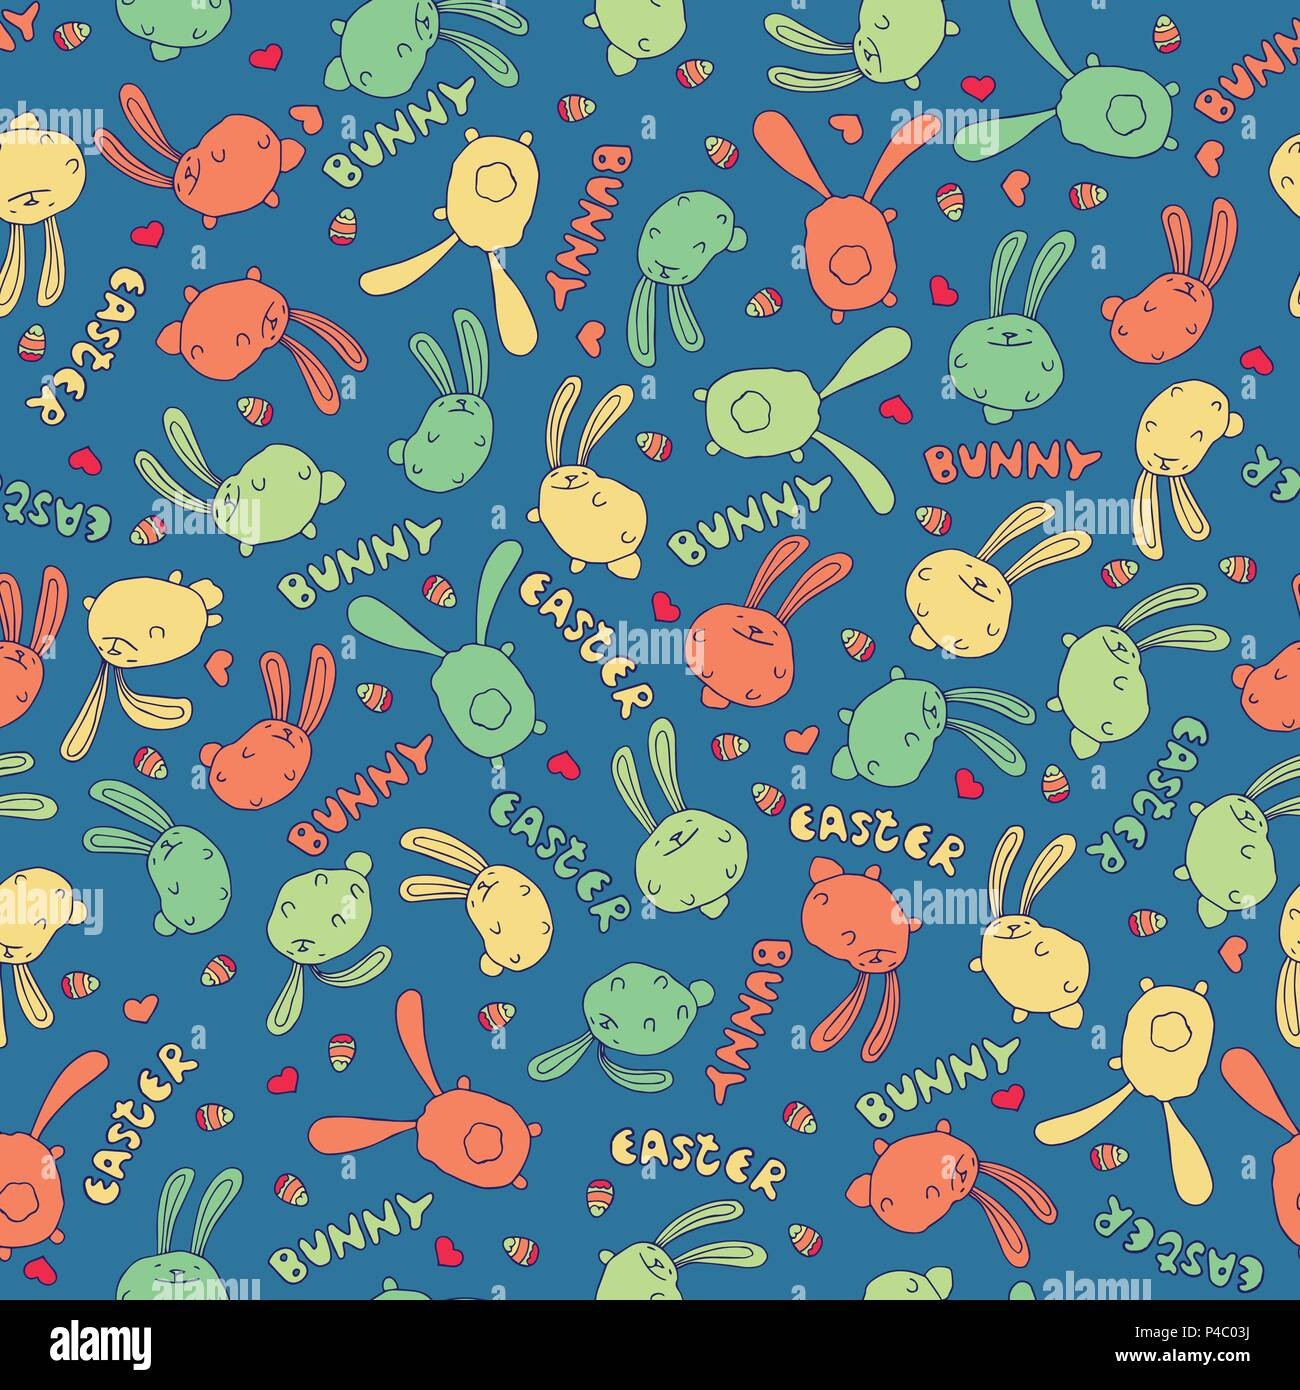 Seamless Nature Pattern With Cute Bunny Or Rabbit In Blue Color